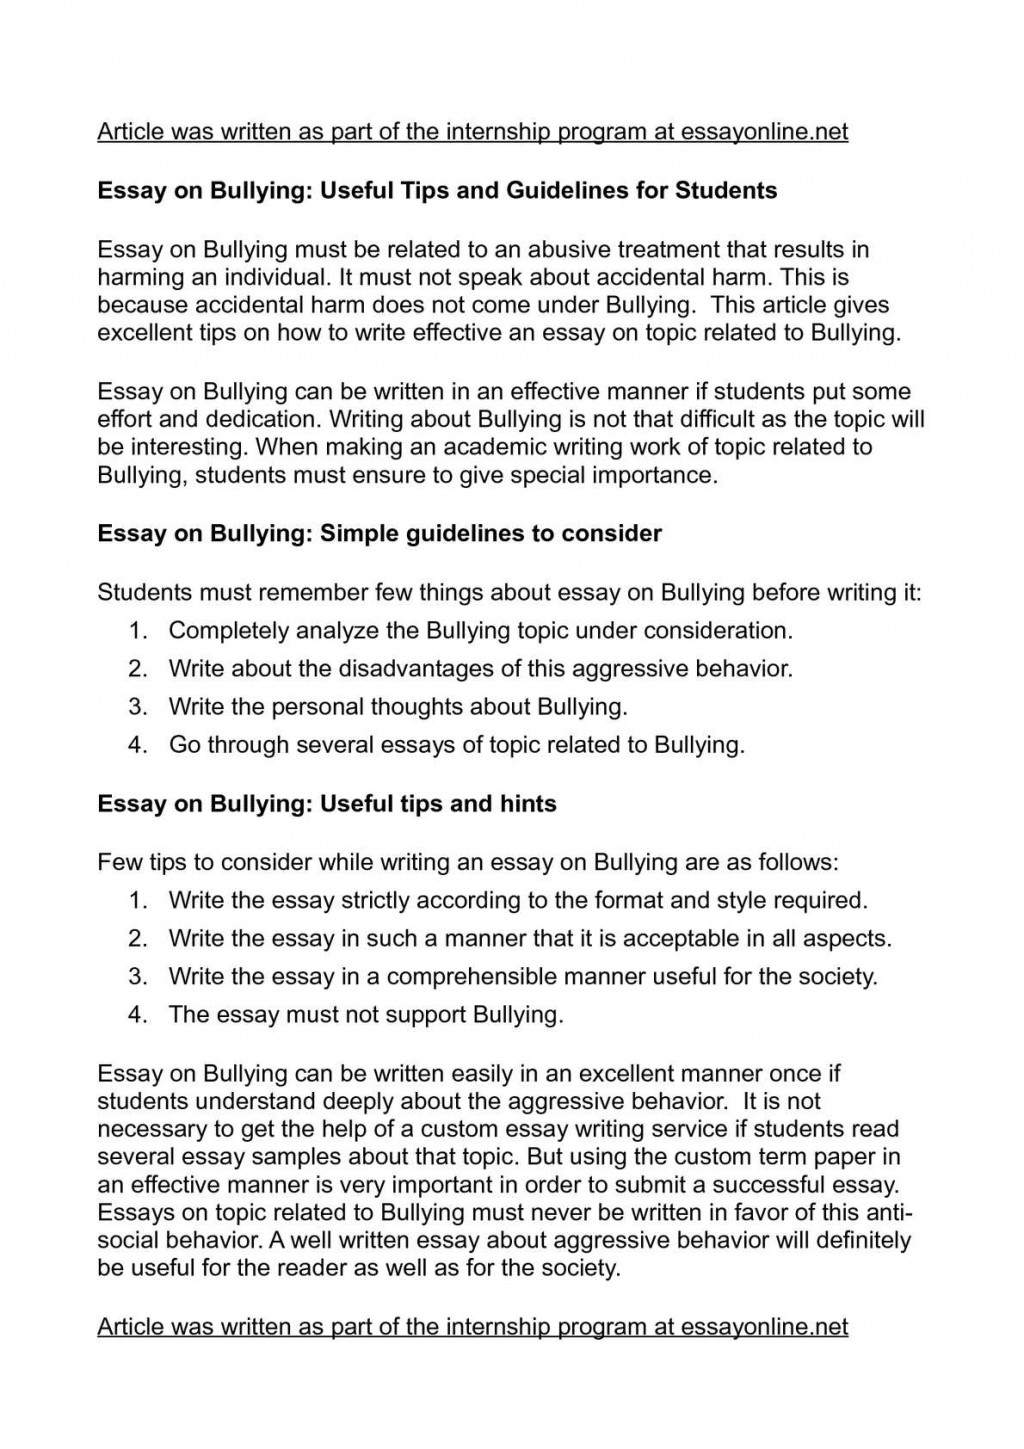 008 Essay About Bullying P1 Best Introduction In School Argumentative Brainly Large